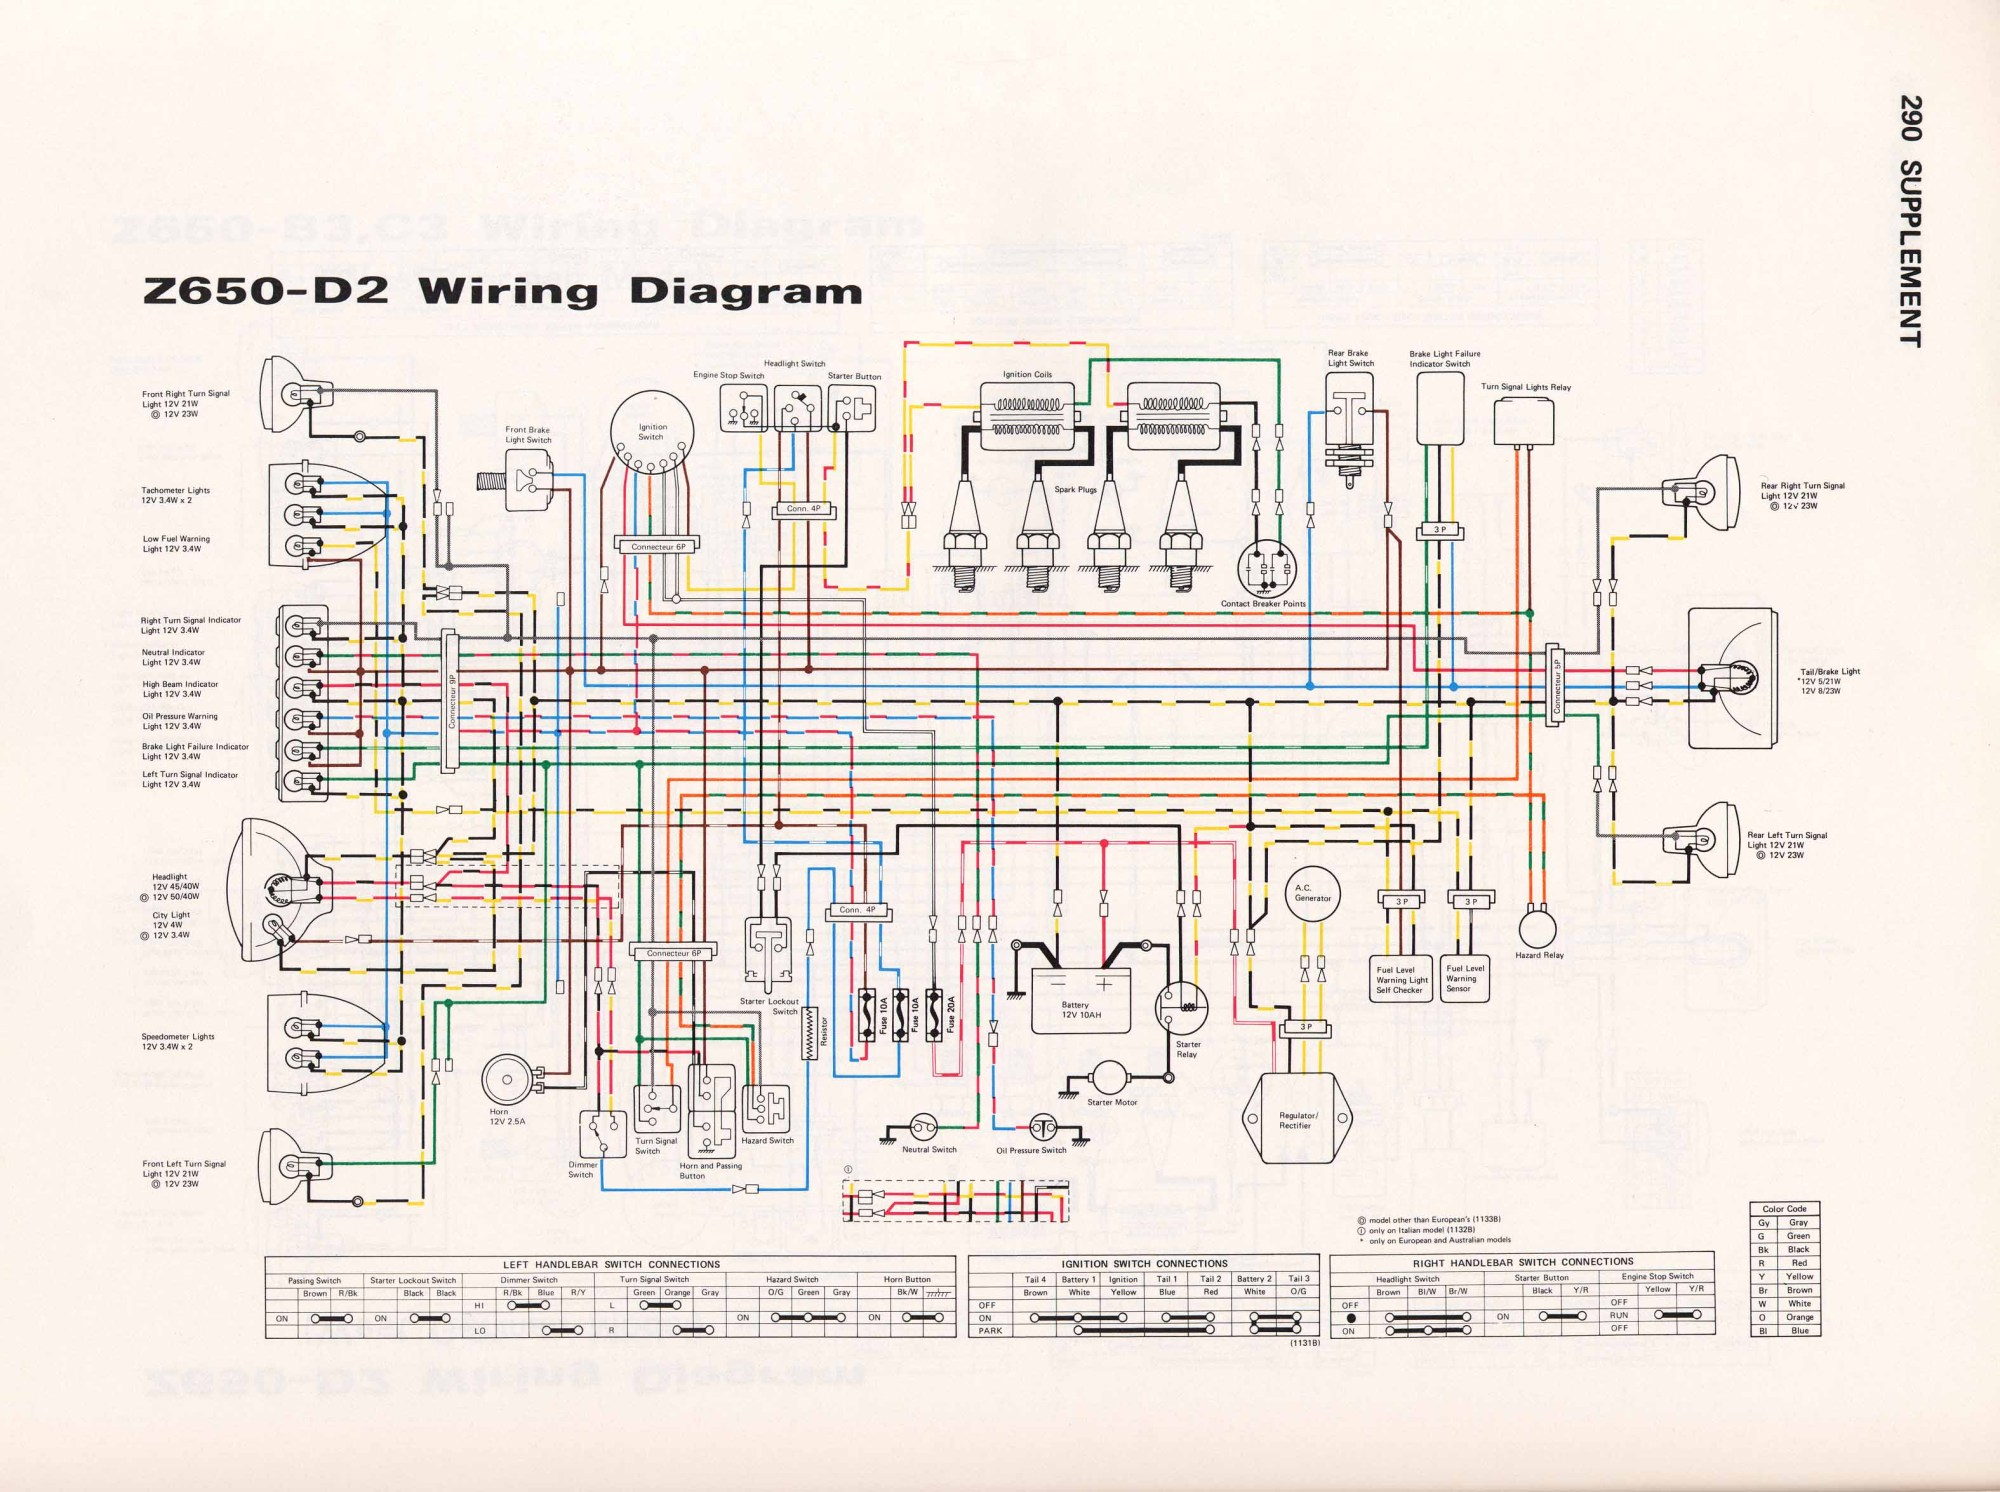 hight resolution of 78 kz650 wiring diagram wiring diagram detailed d4 wiring diagram kz650 1977 kawasaki wiring diagrams